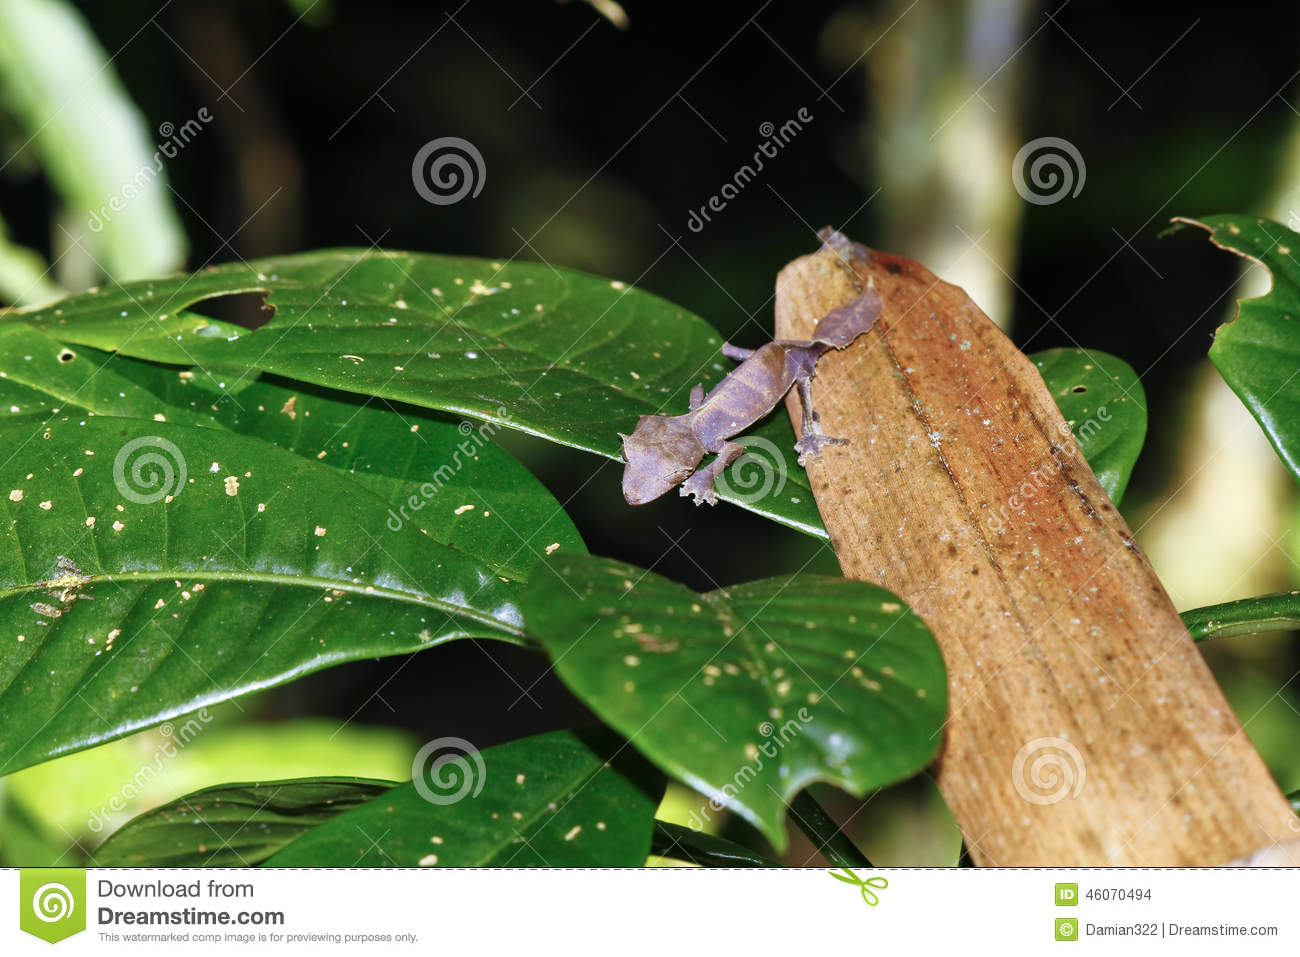 Satanic Leaf-tailed Gecko clipart #4, Download drawings